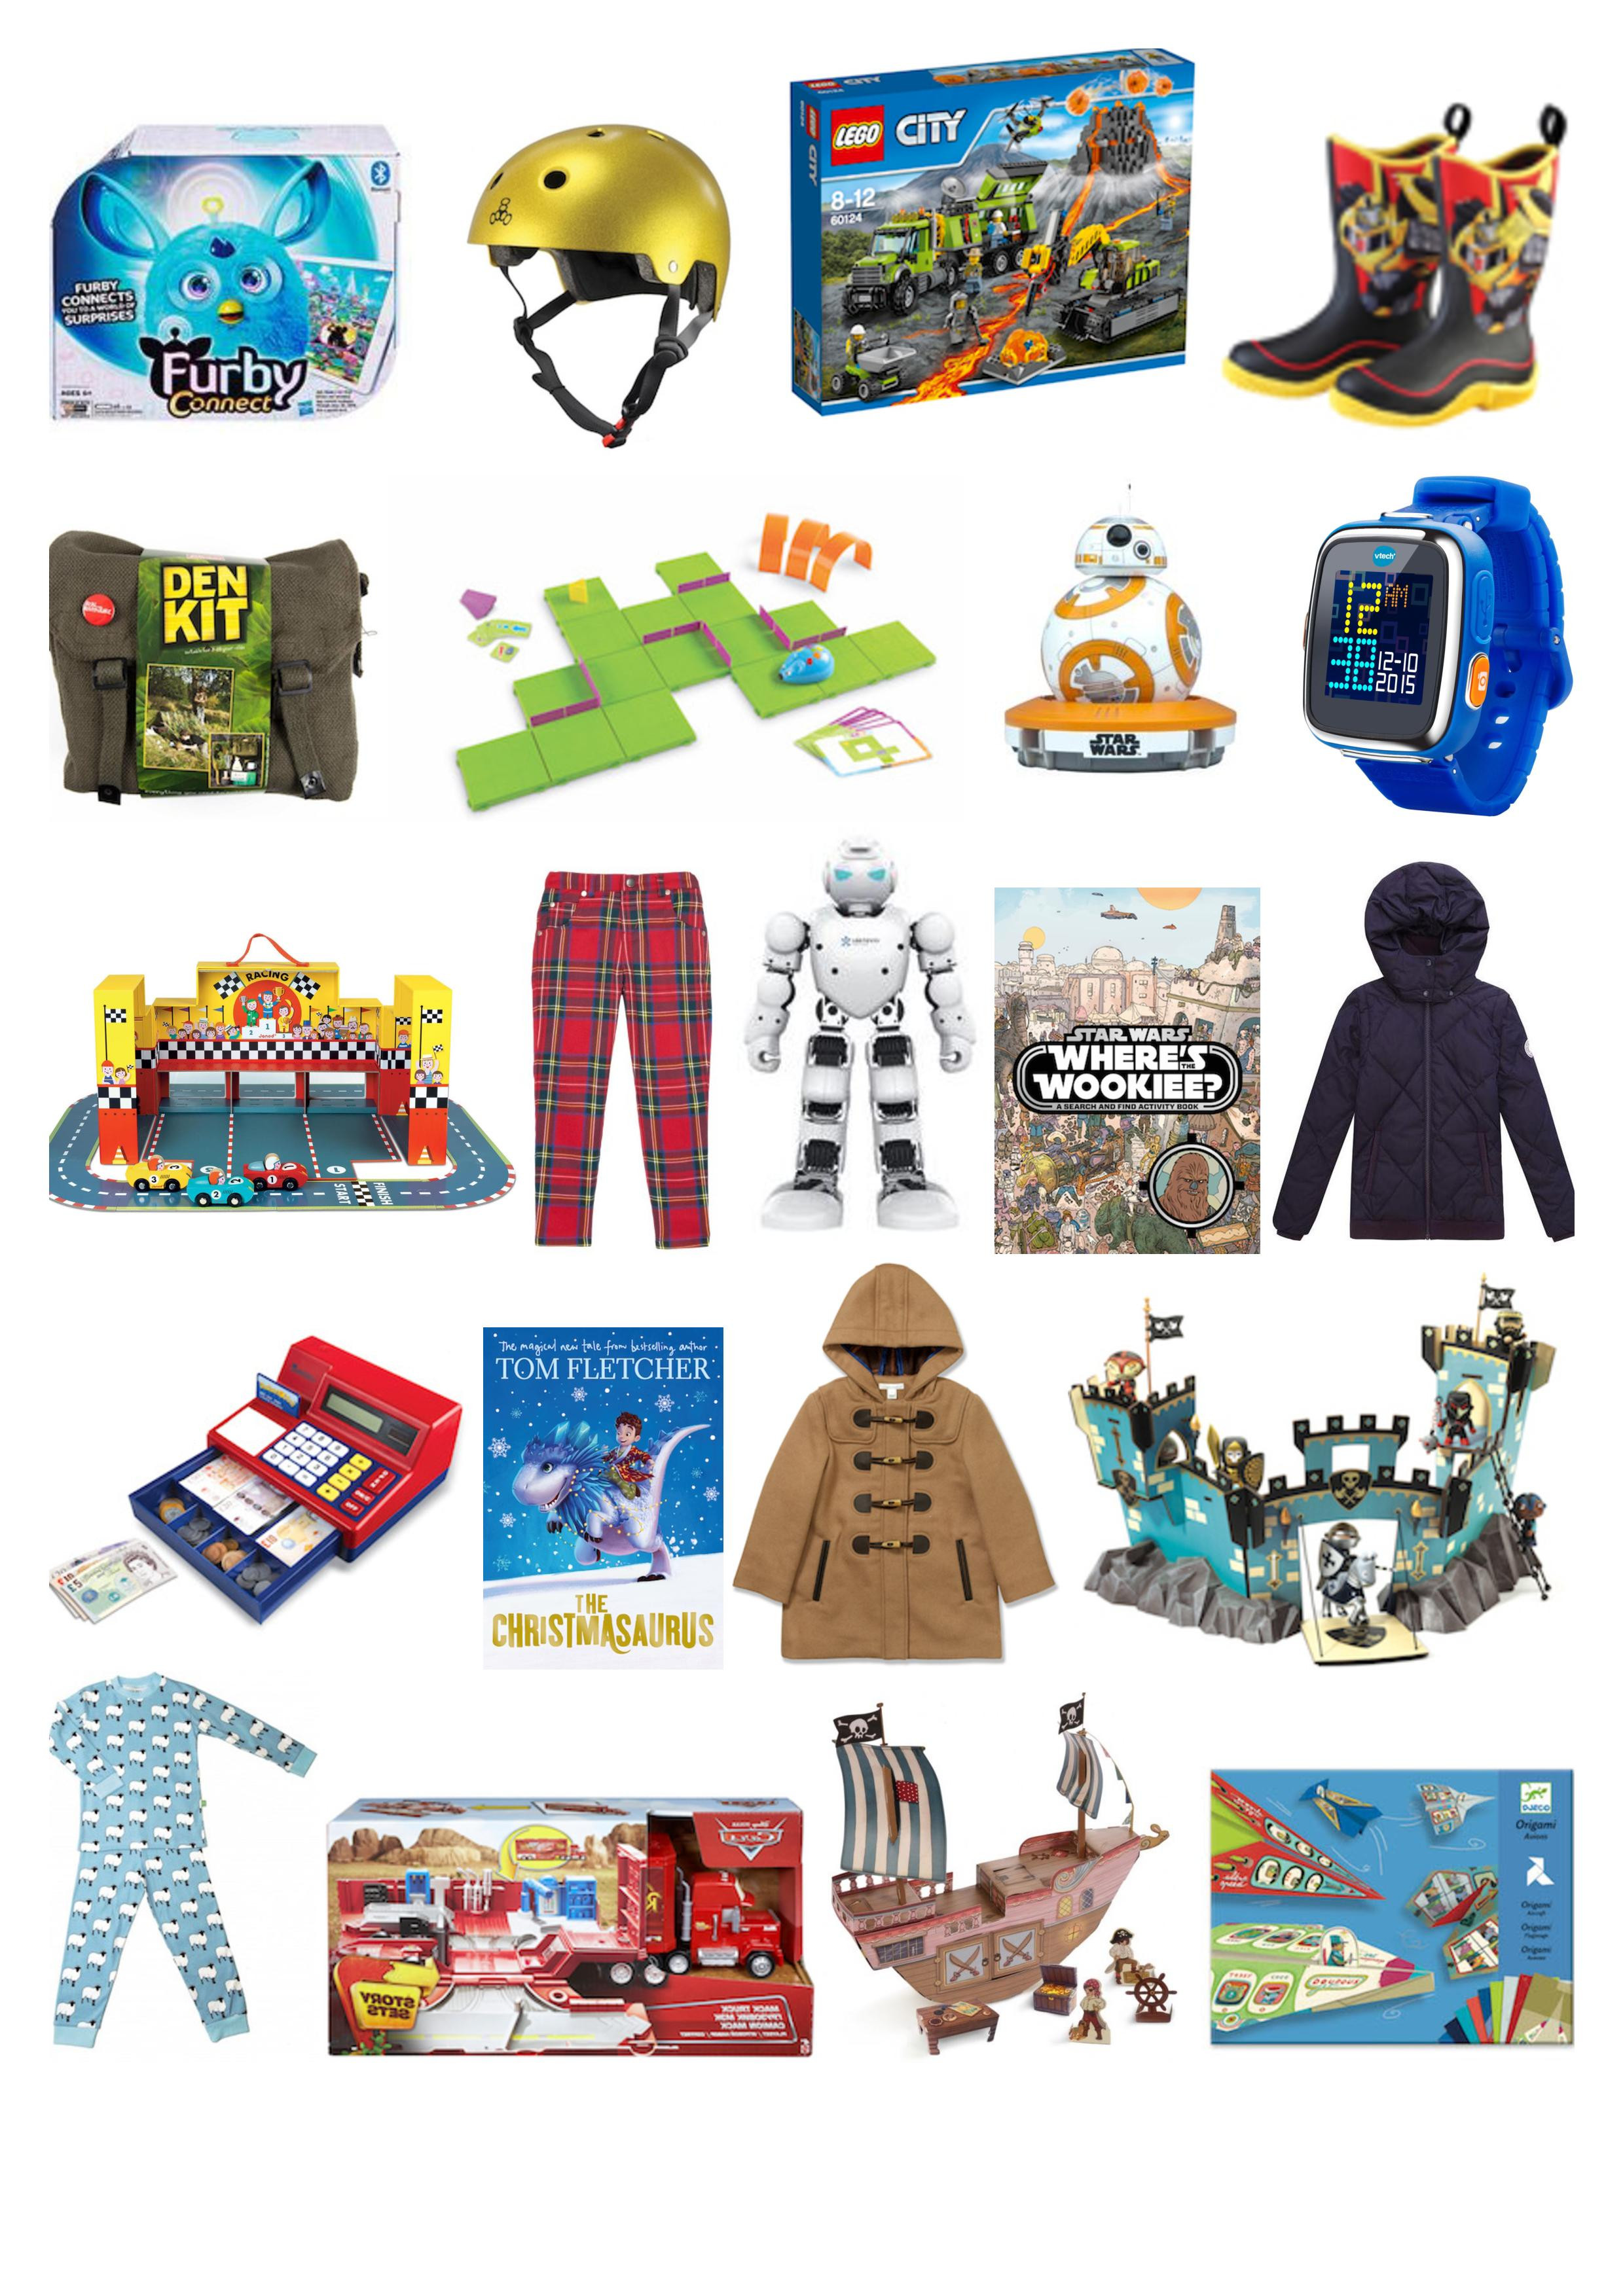 Best ideas about Christmas Gift Ideas For Boys . Save or Pin 22 Christmas t ideas for boys Mummy in the City Now.